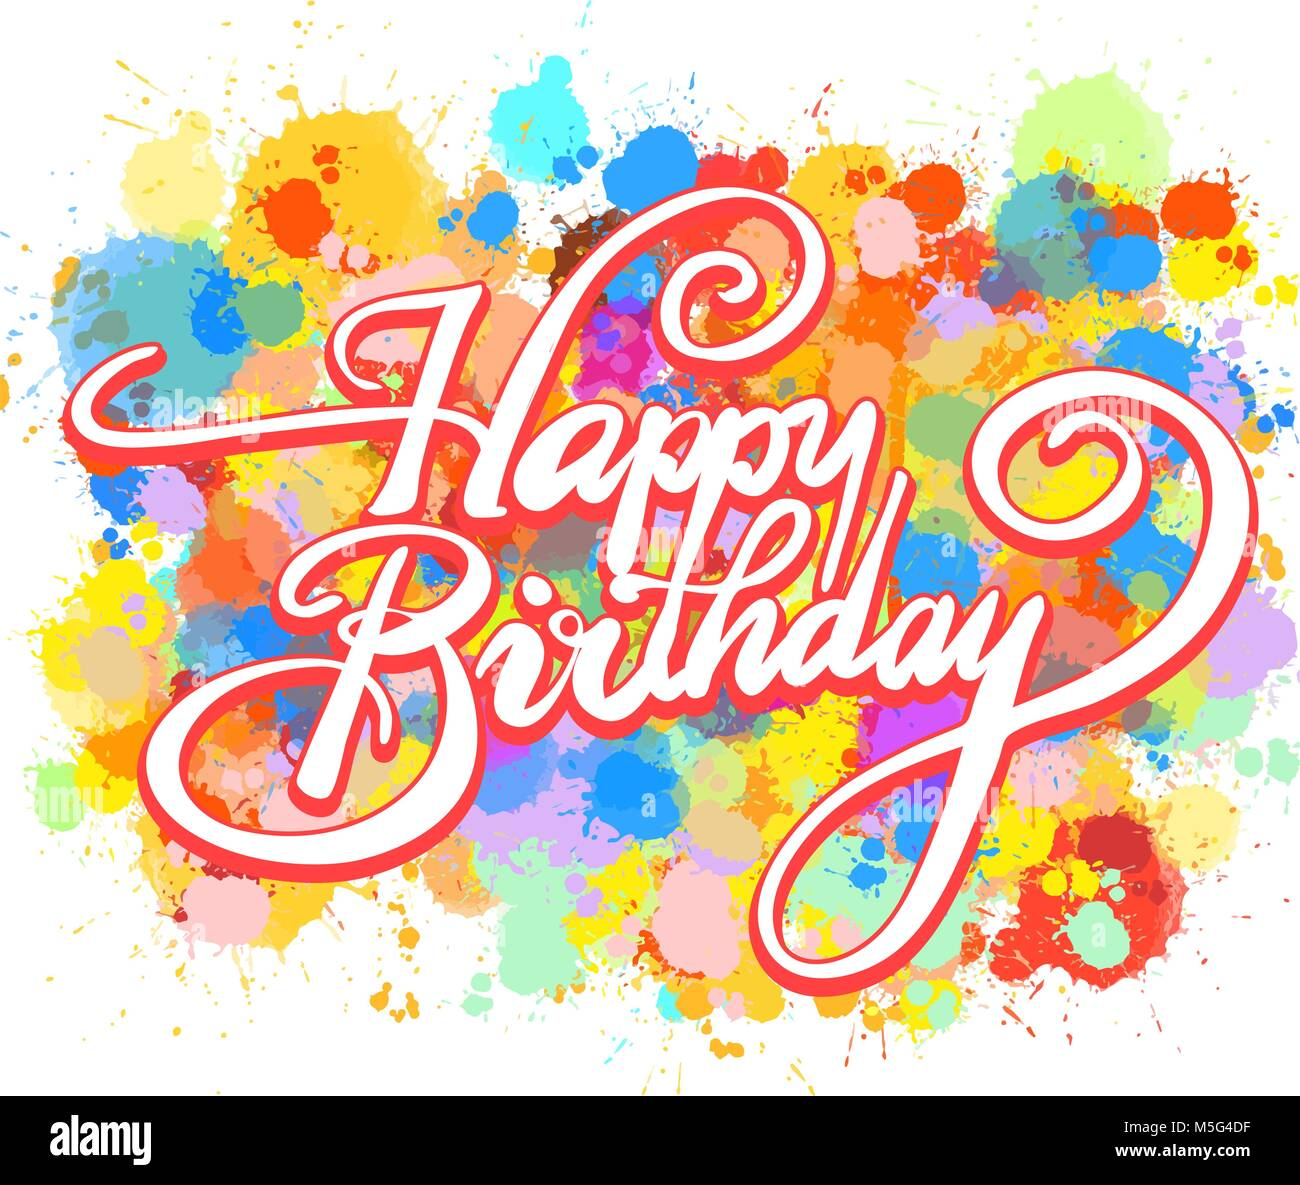 Happy Birthday Word Hand Lettering Colorful Vector Artwork Concept Ready For Poster Print And Greeting Card Design